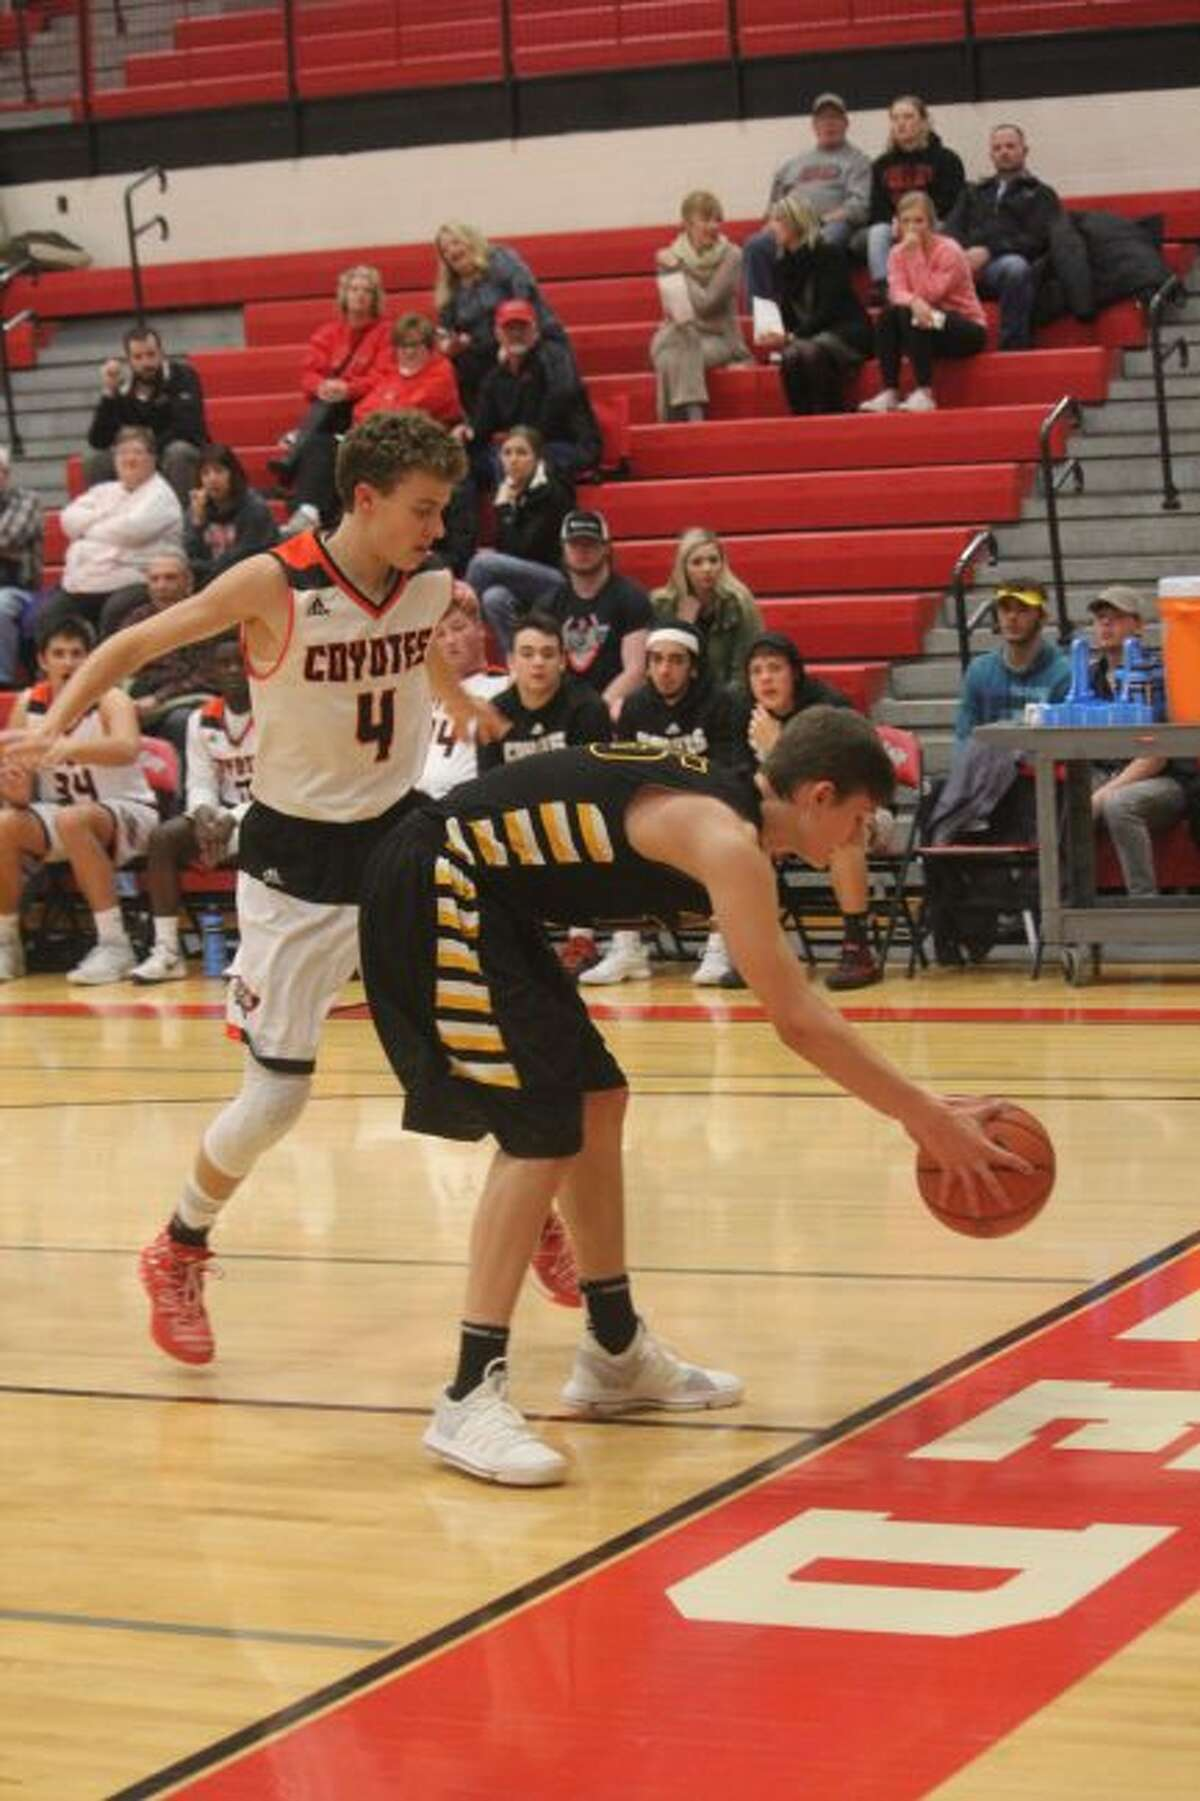 Brandon Wirth is on the defense for Reed City.